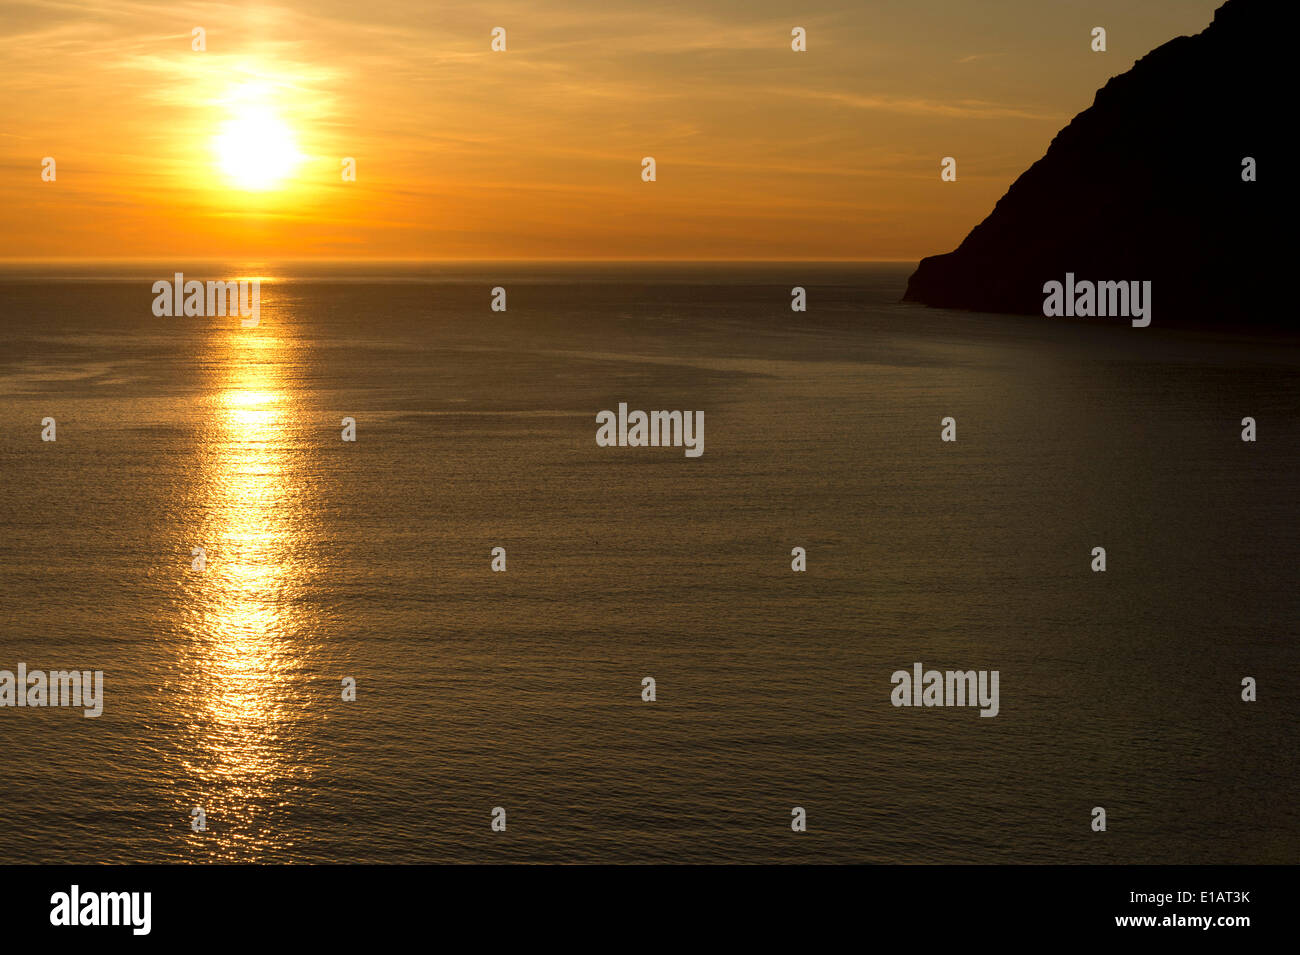 Sunset, Viðoy, Faroe Islands, Denmark Stock Photo